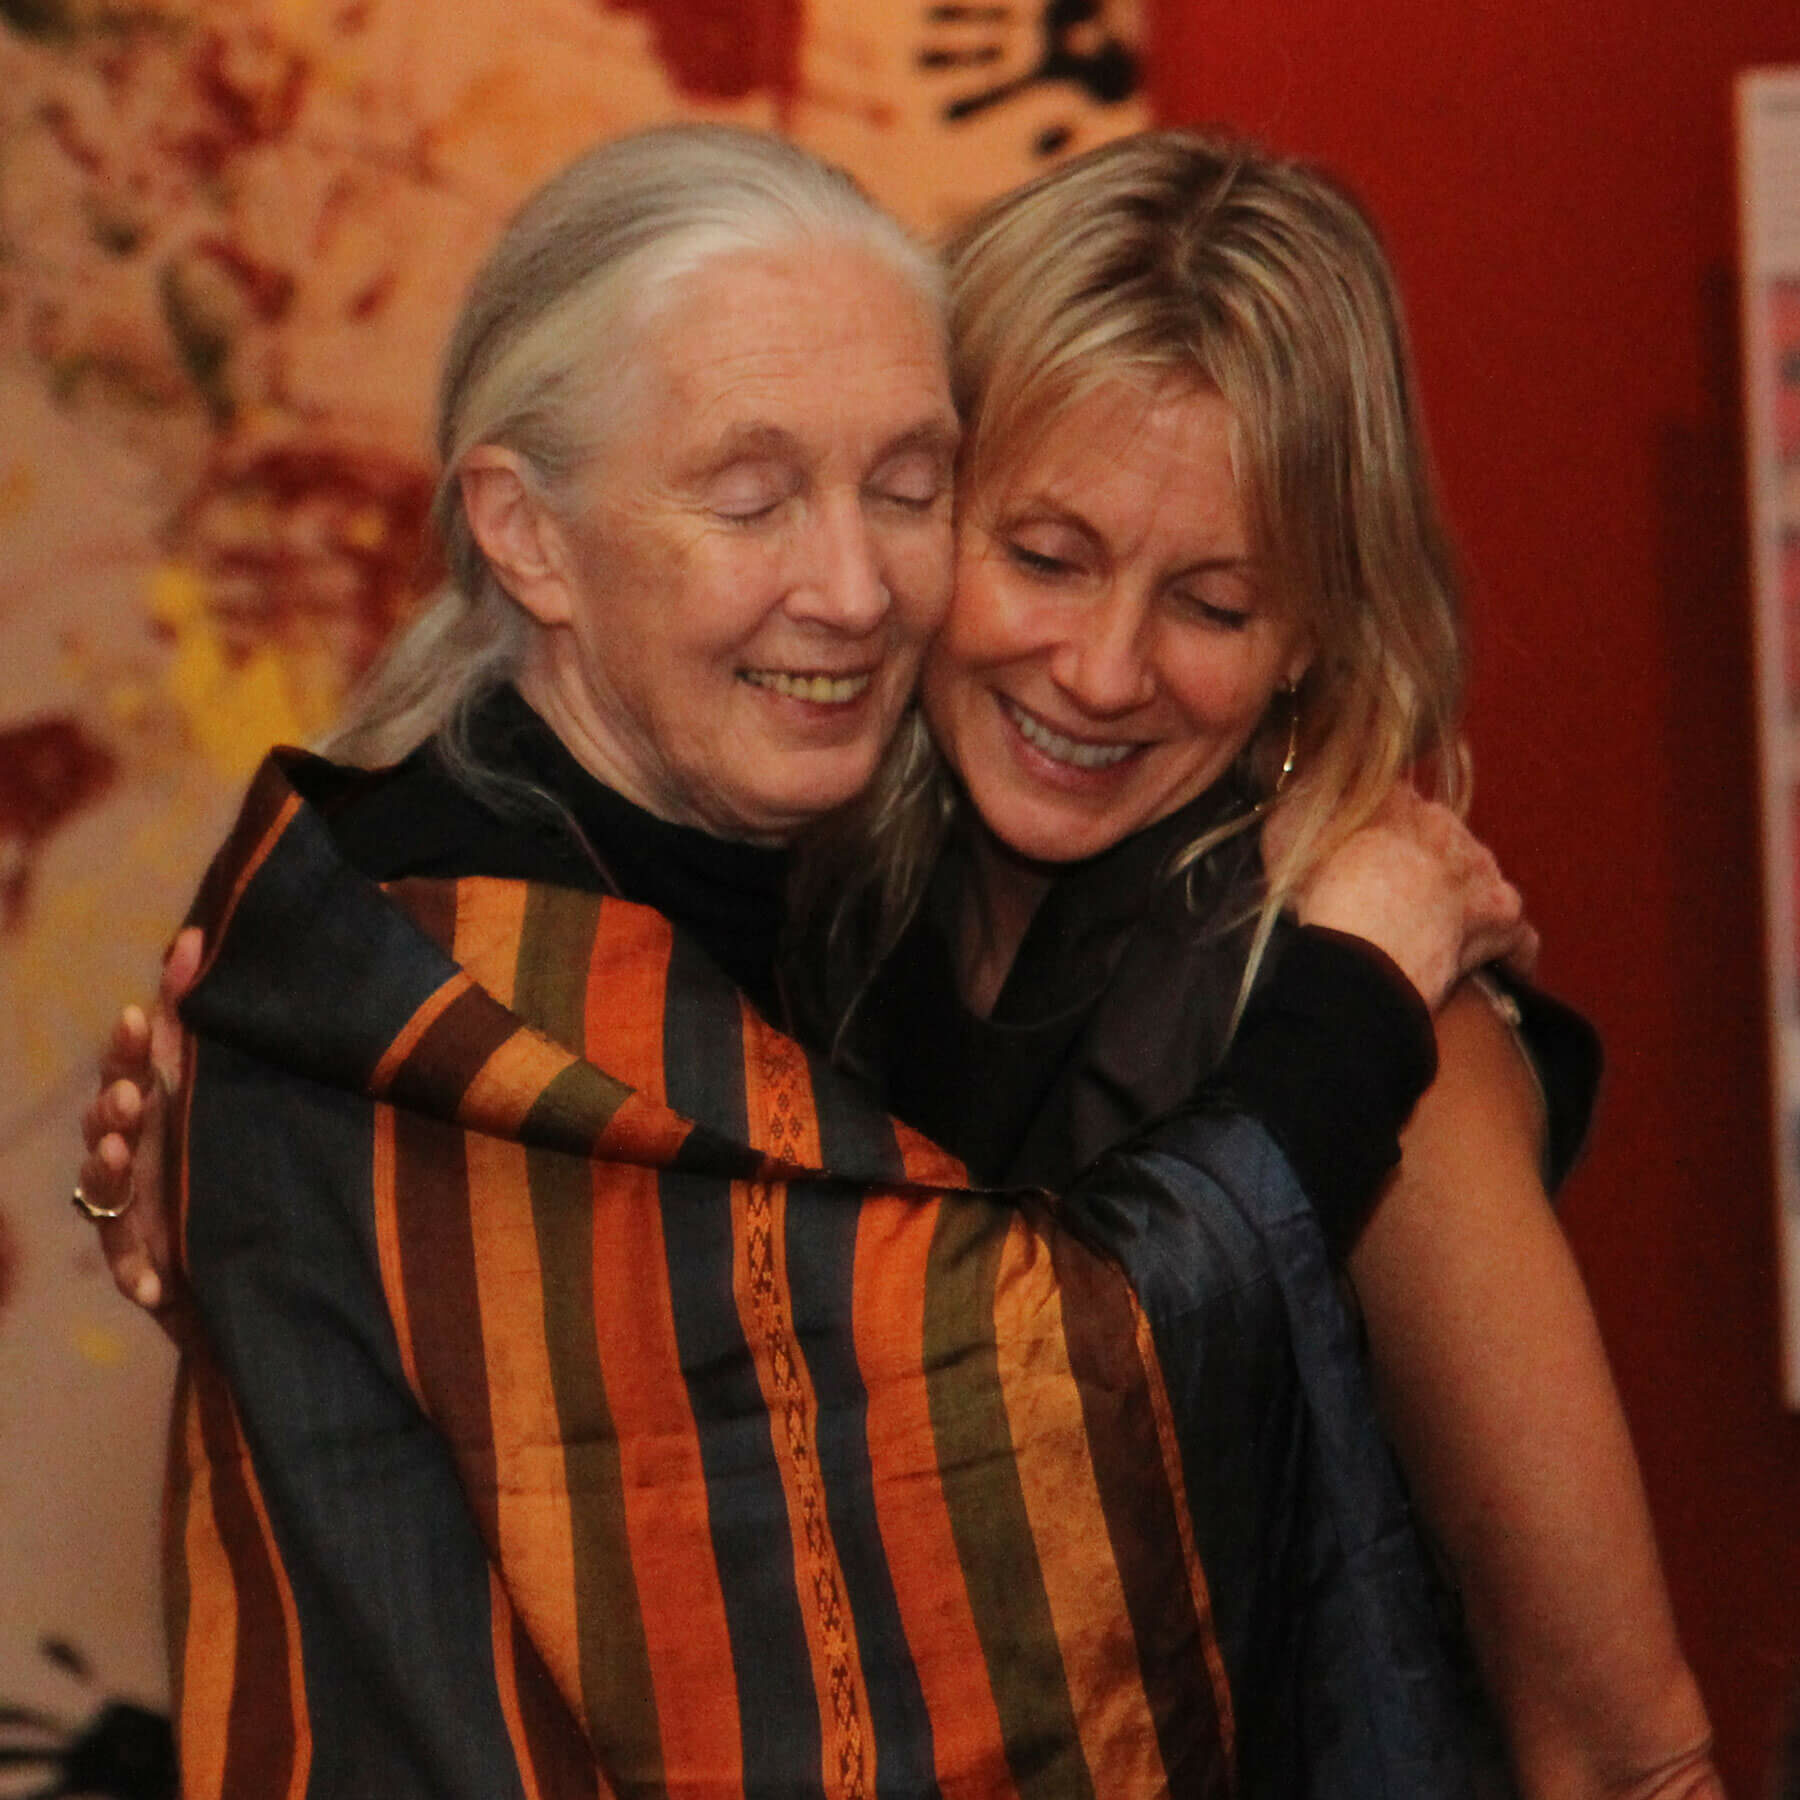 Jane Goodall with Living Peace Foundation founder Kelly Smith